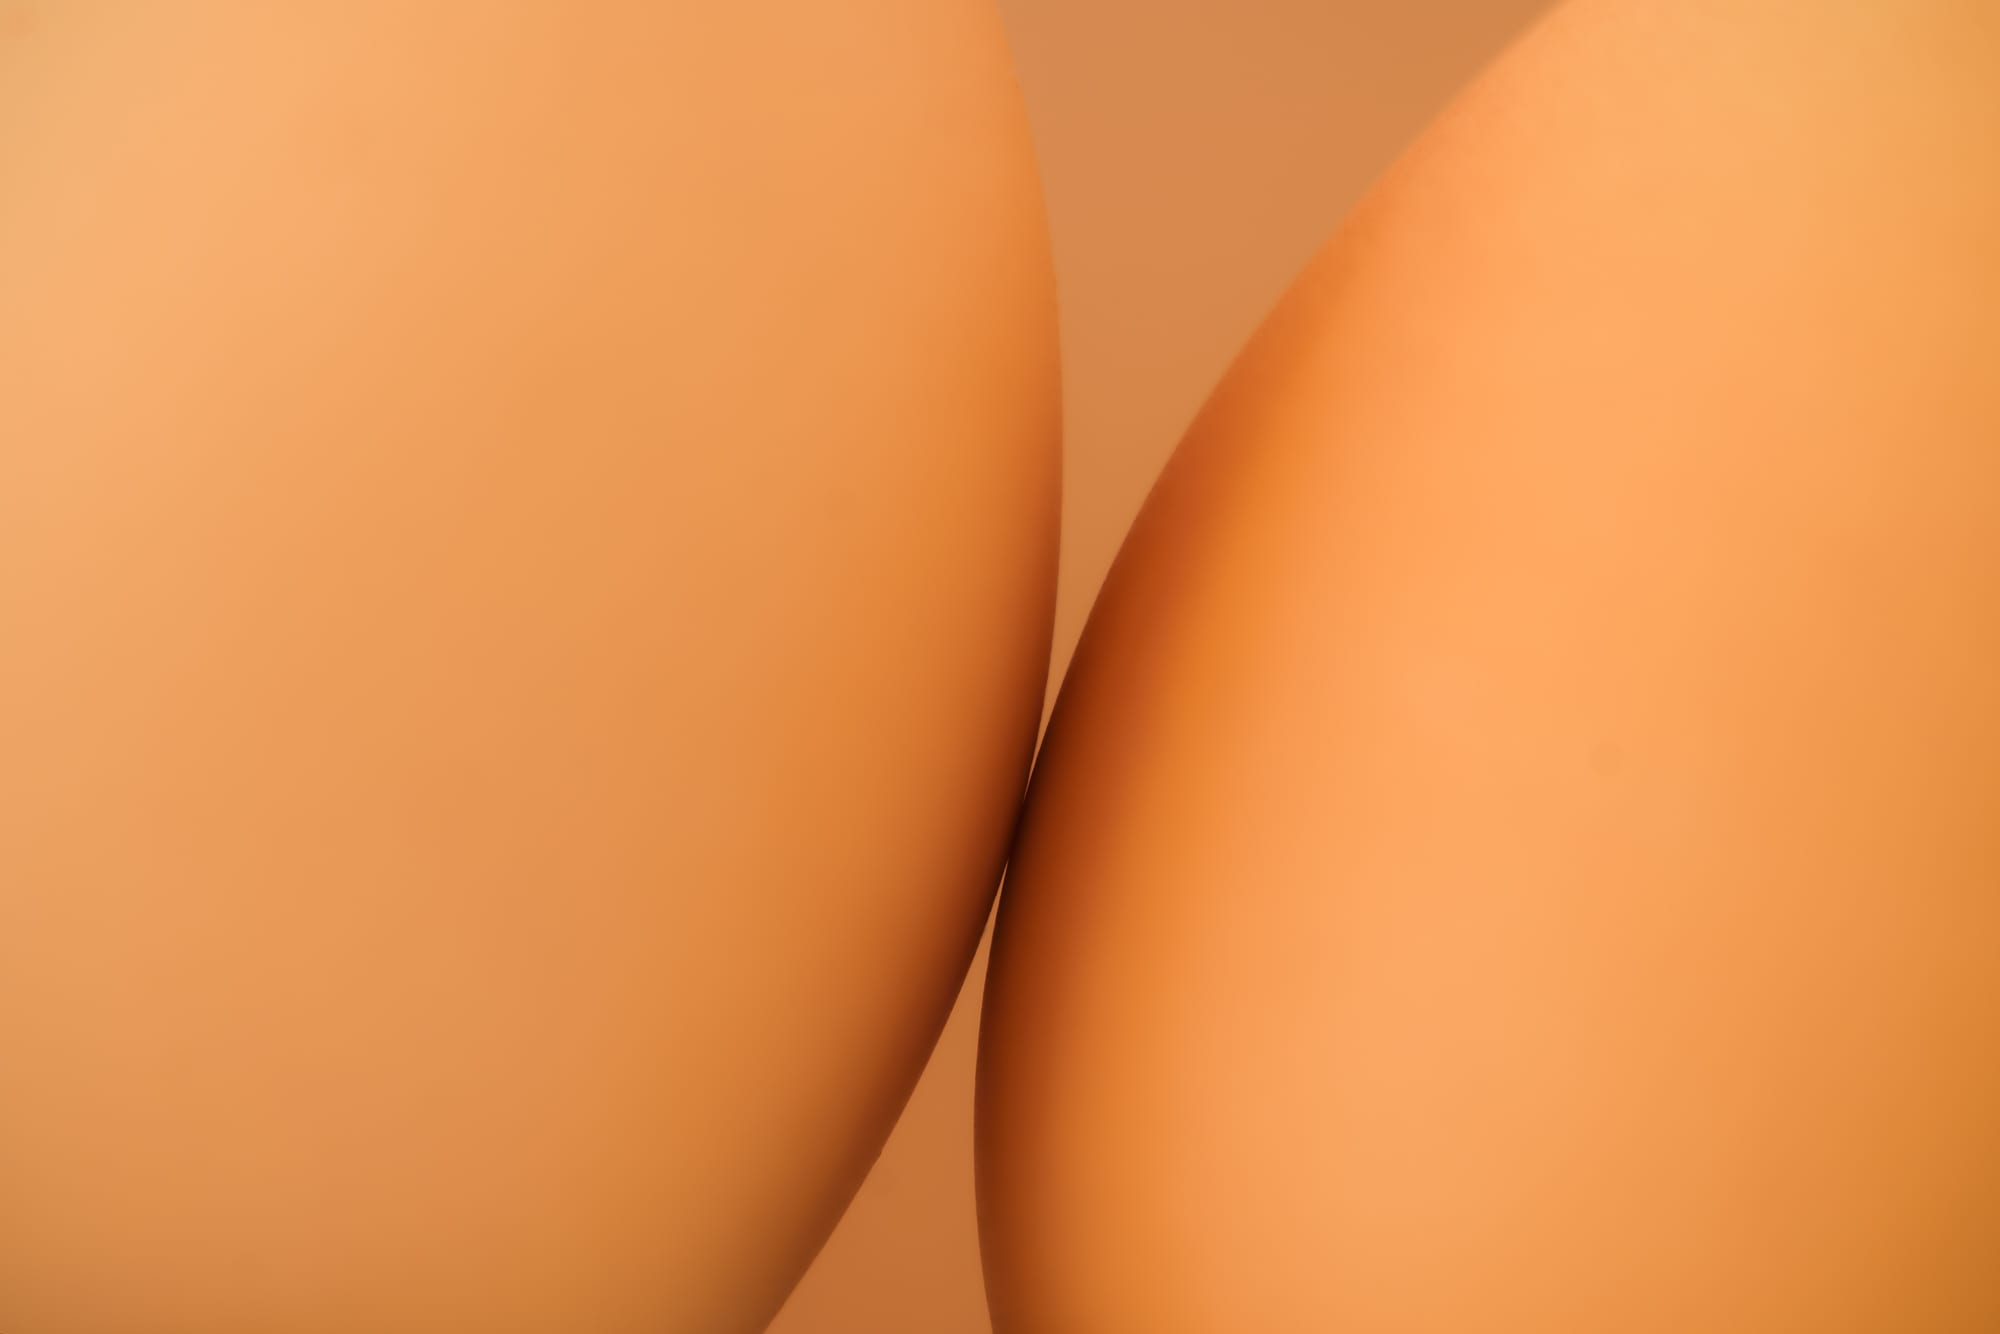 Close up of two eggs leaning together intimately.